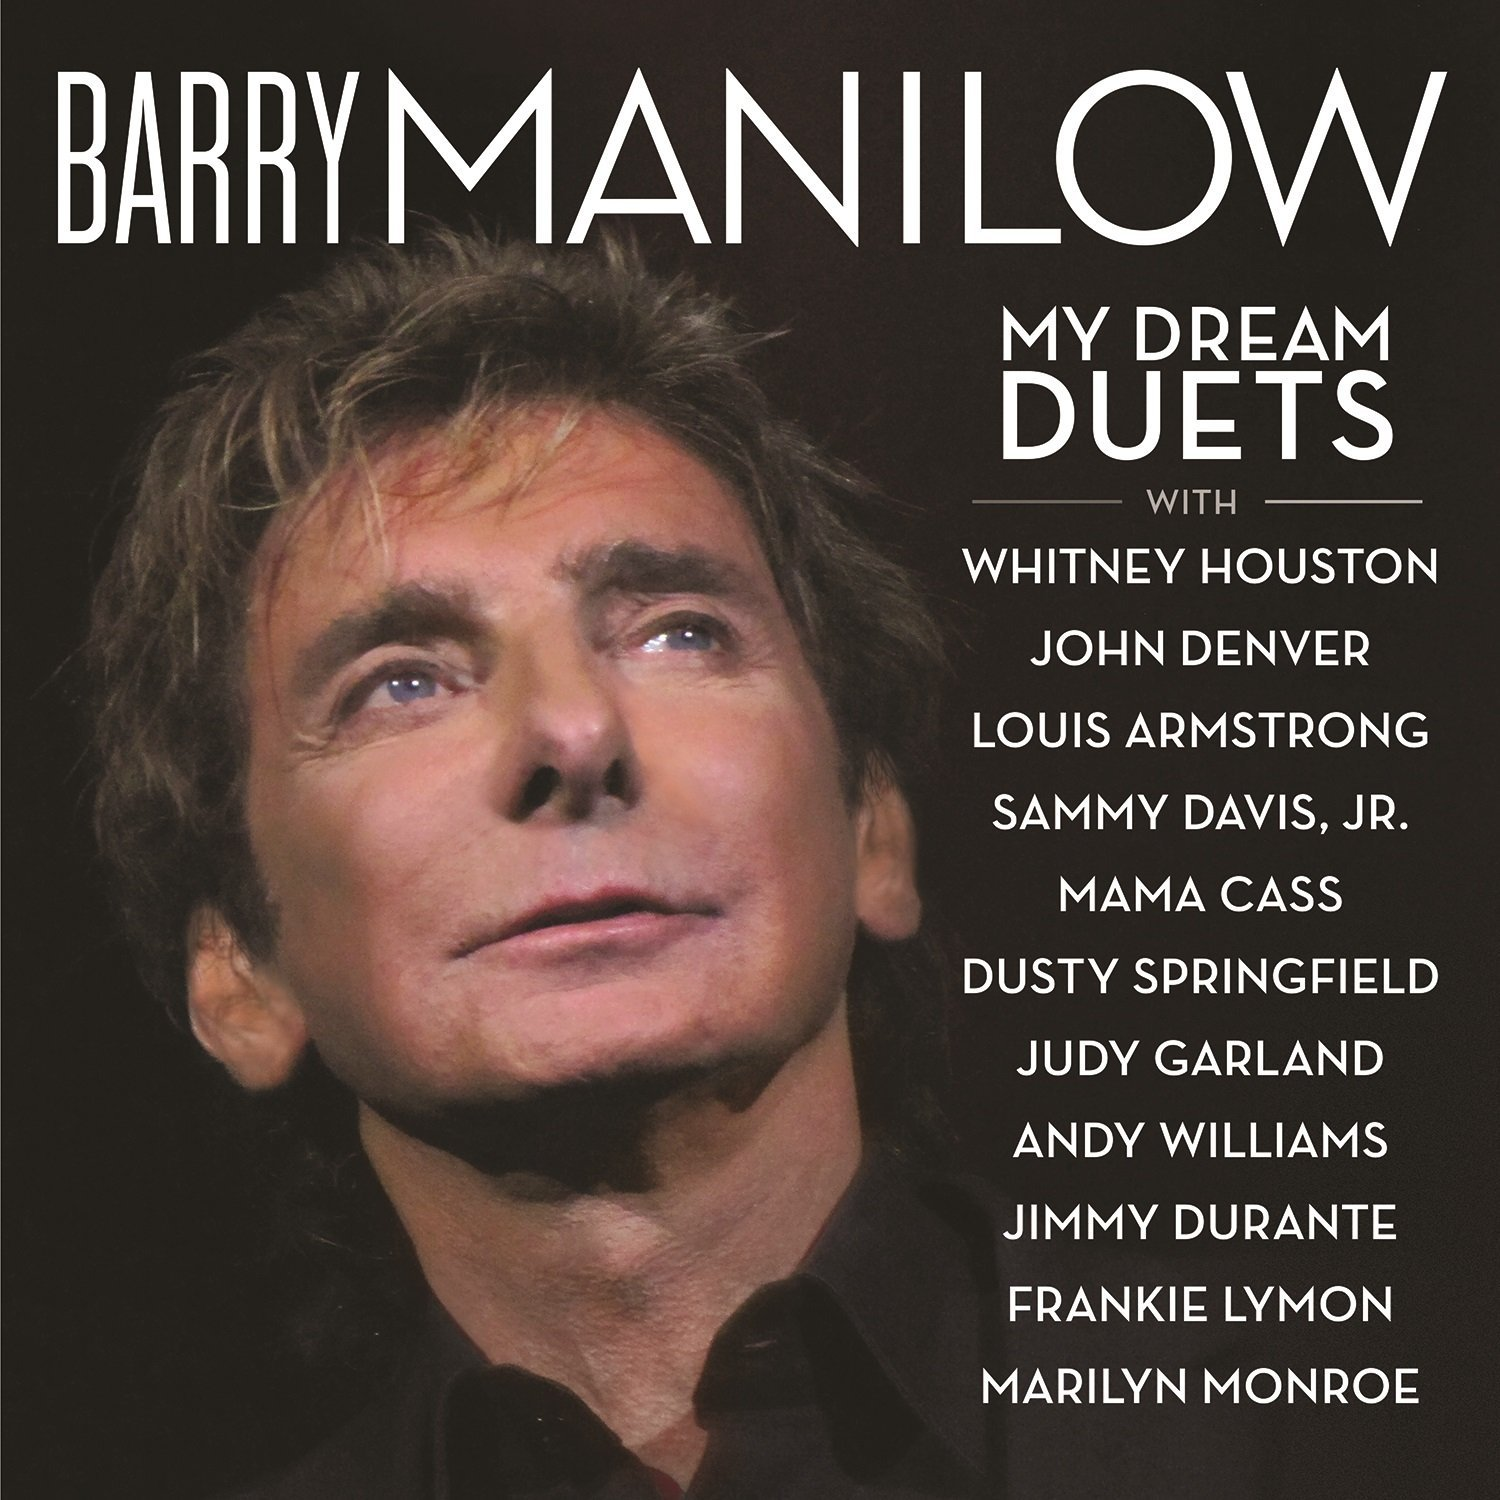 Barry Manilow My Dream Duets Album Artwork